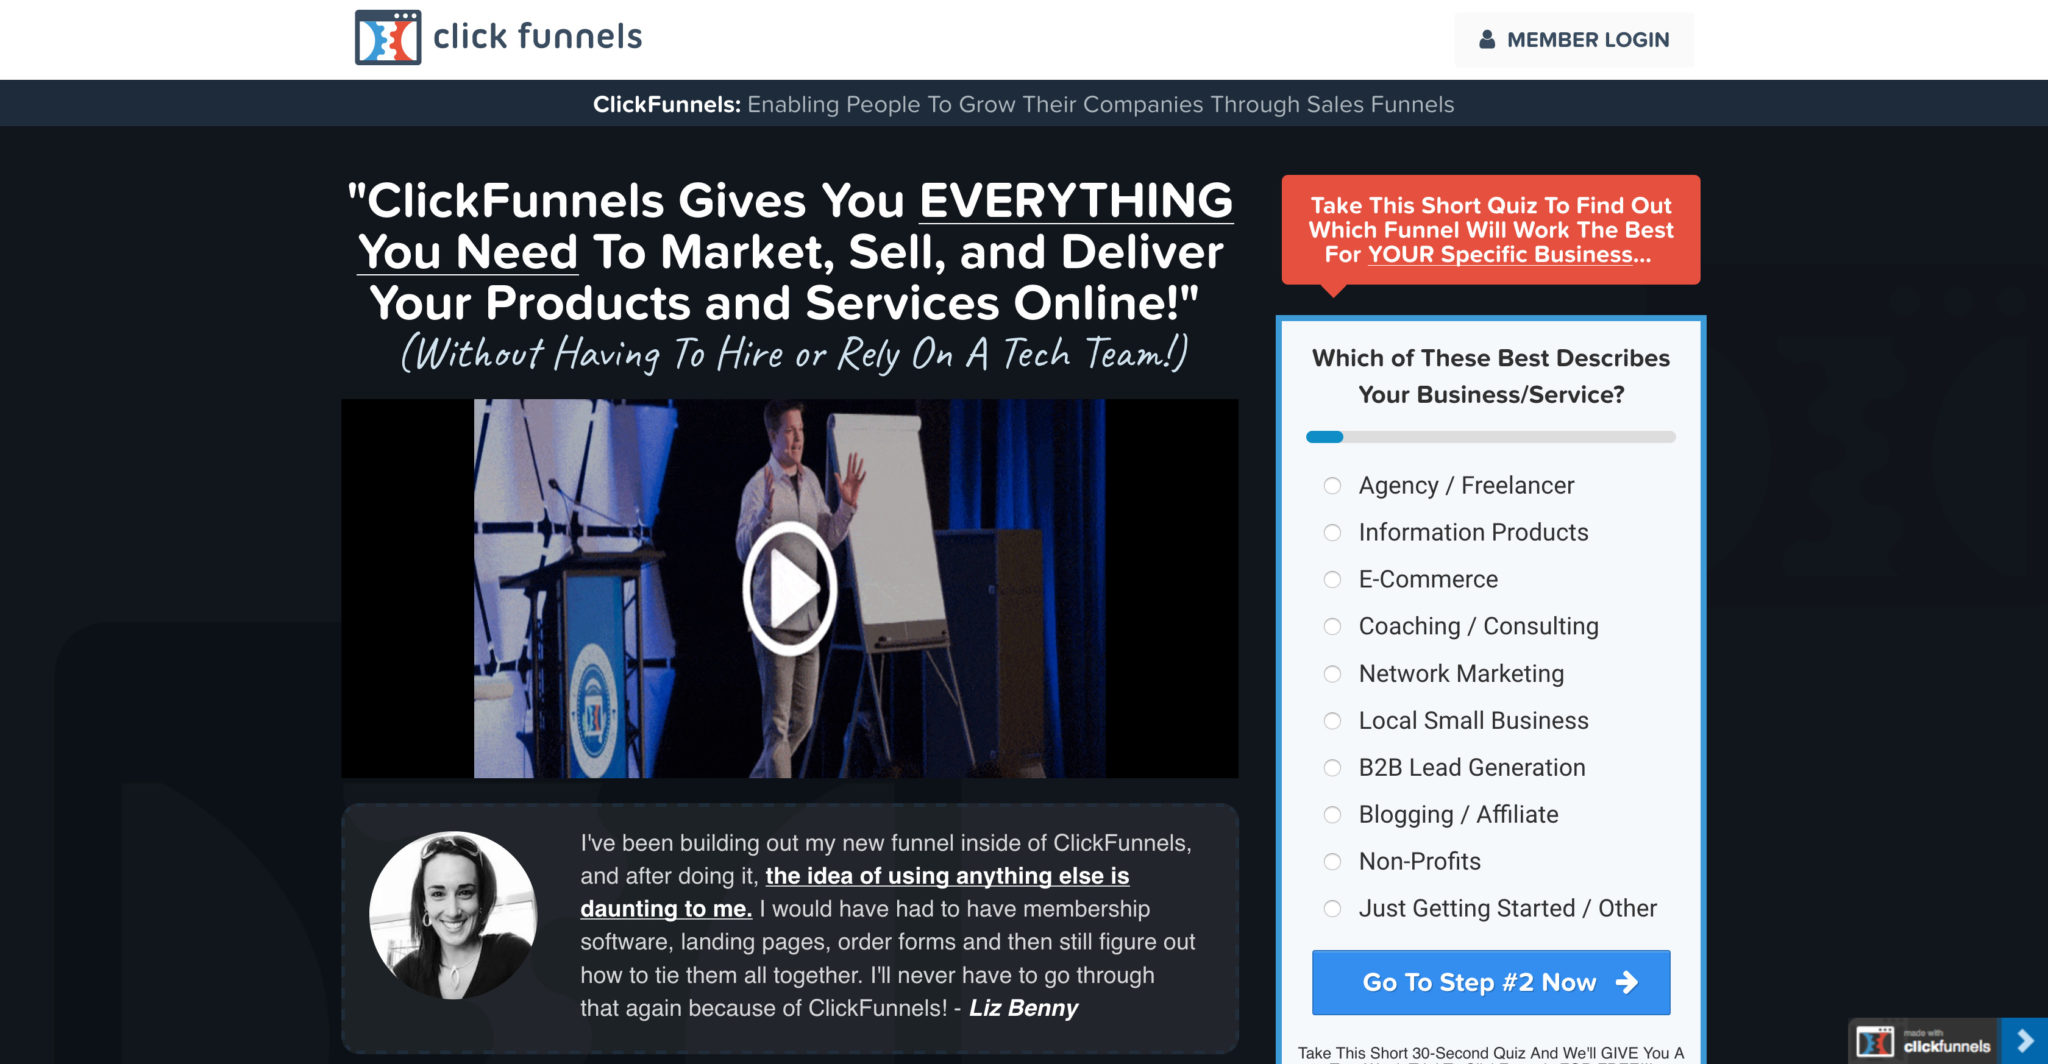 ClickFunnels - Marketing Funnels Made Easy